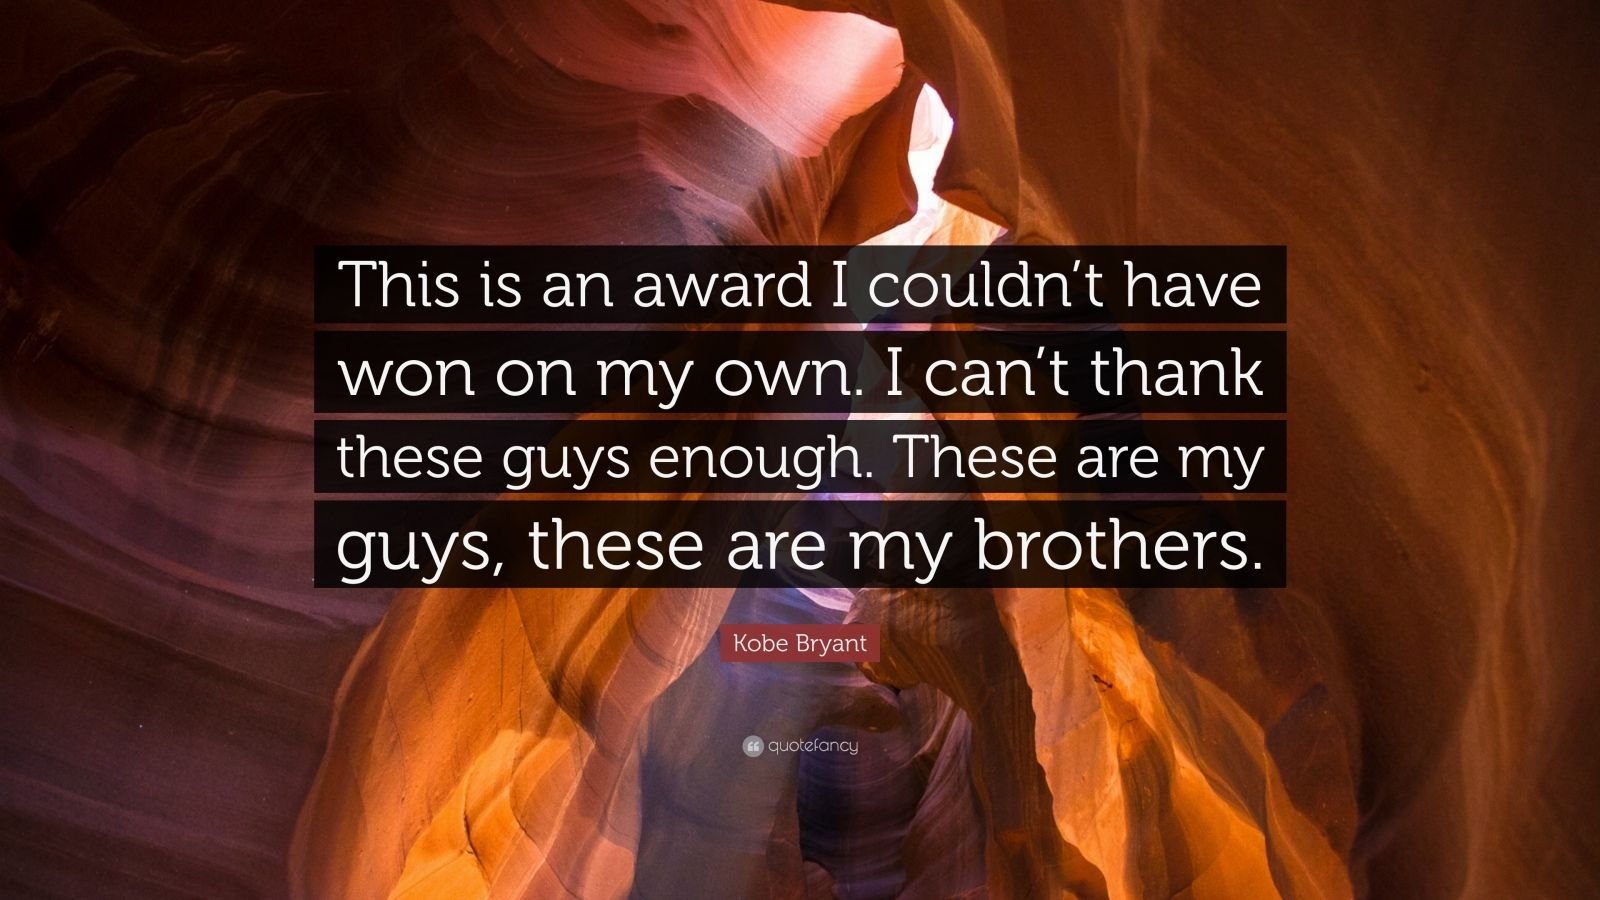 """Kobe Bryant Quote: """"This is an award I couldn't have won on my own. I can't thank these guys enough. These are my guys, these are my brothers."""""""